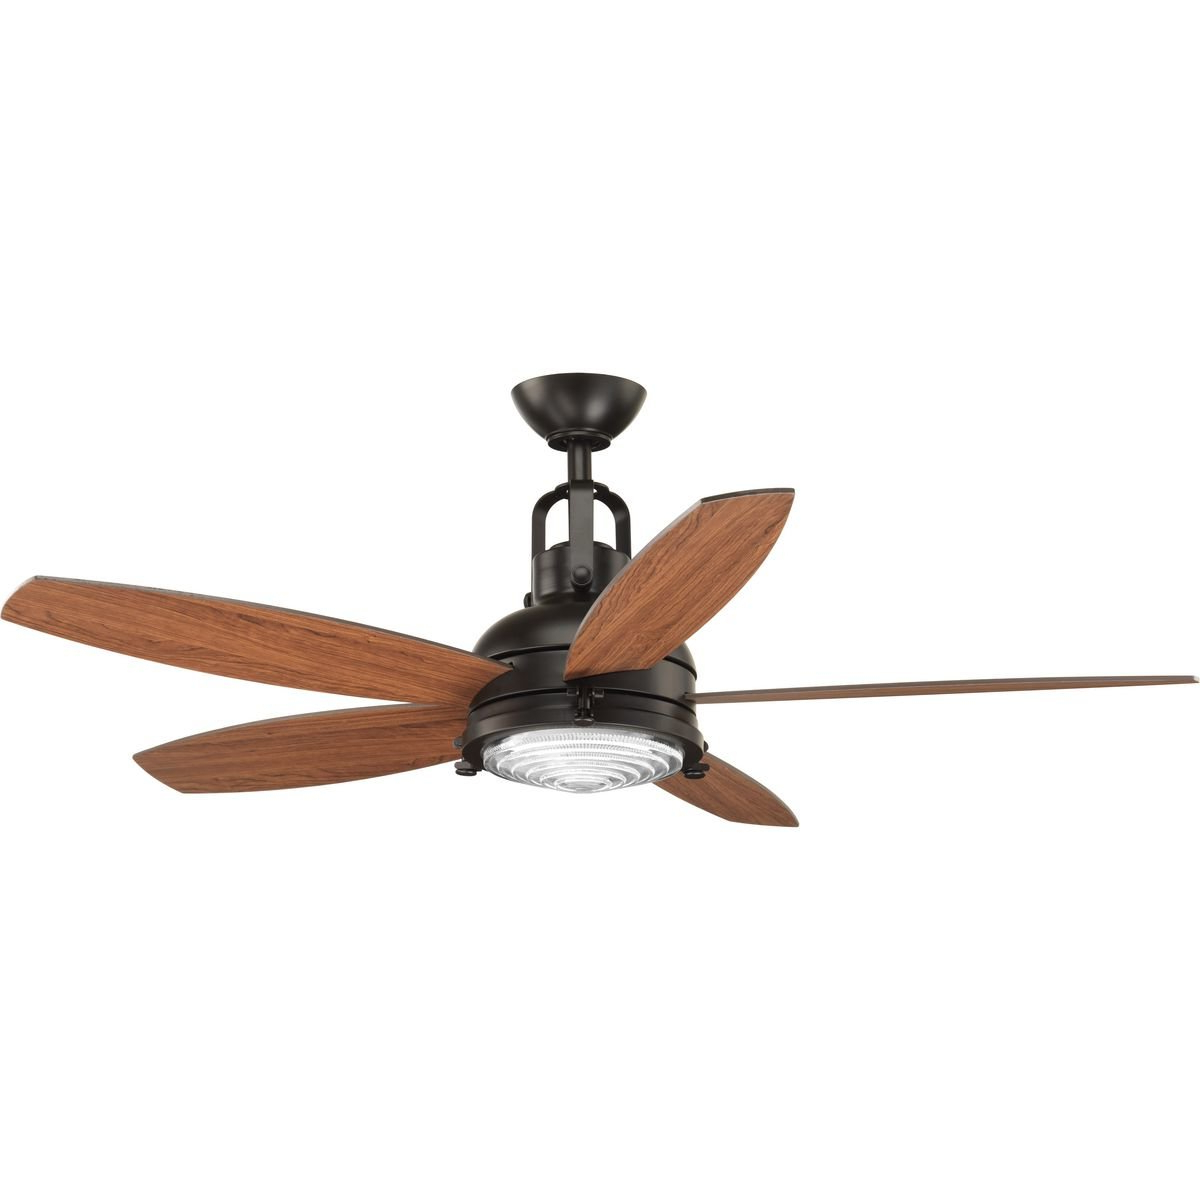 2019 Kalista 5 Blade Ceiling Fans With Regard To Gehlert 5 Blade Led Ceiling Fan With Remote (View 7 of 20)